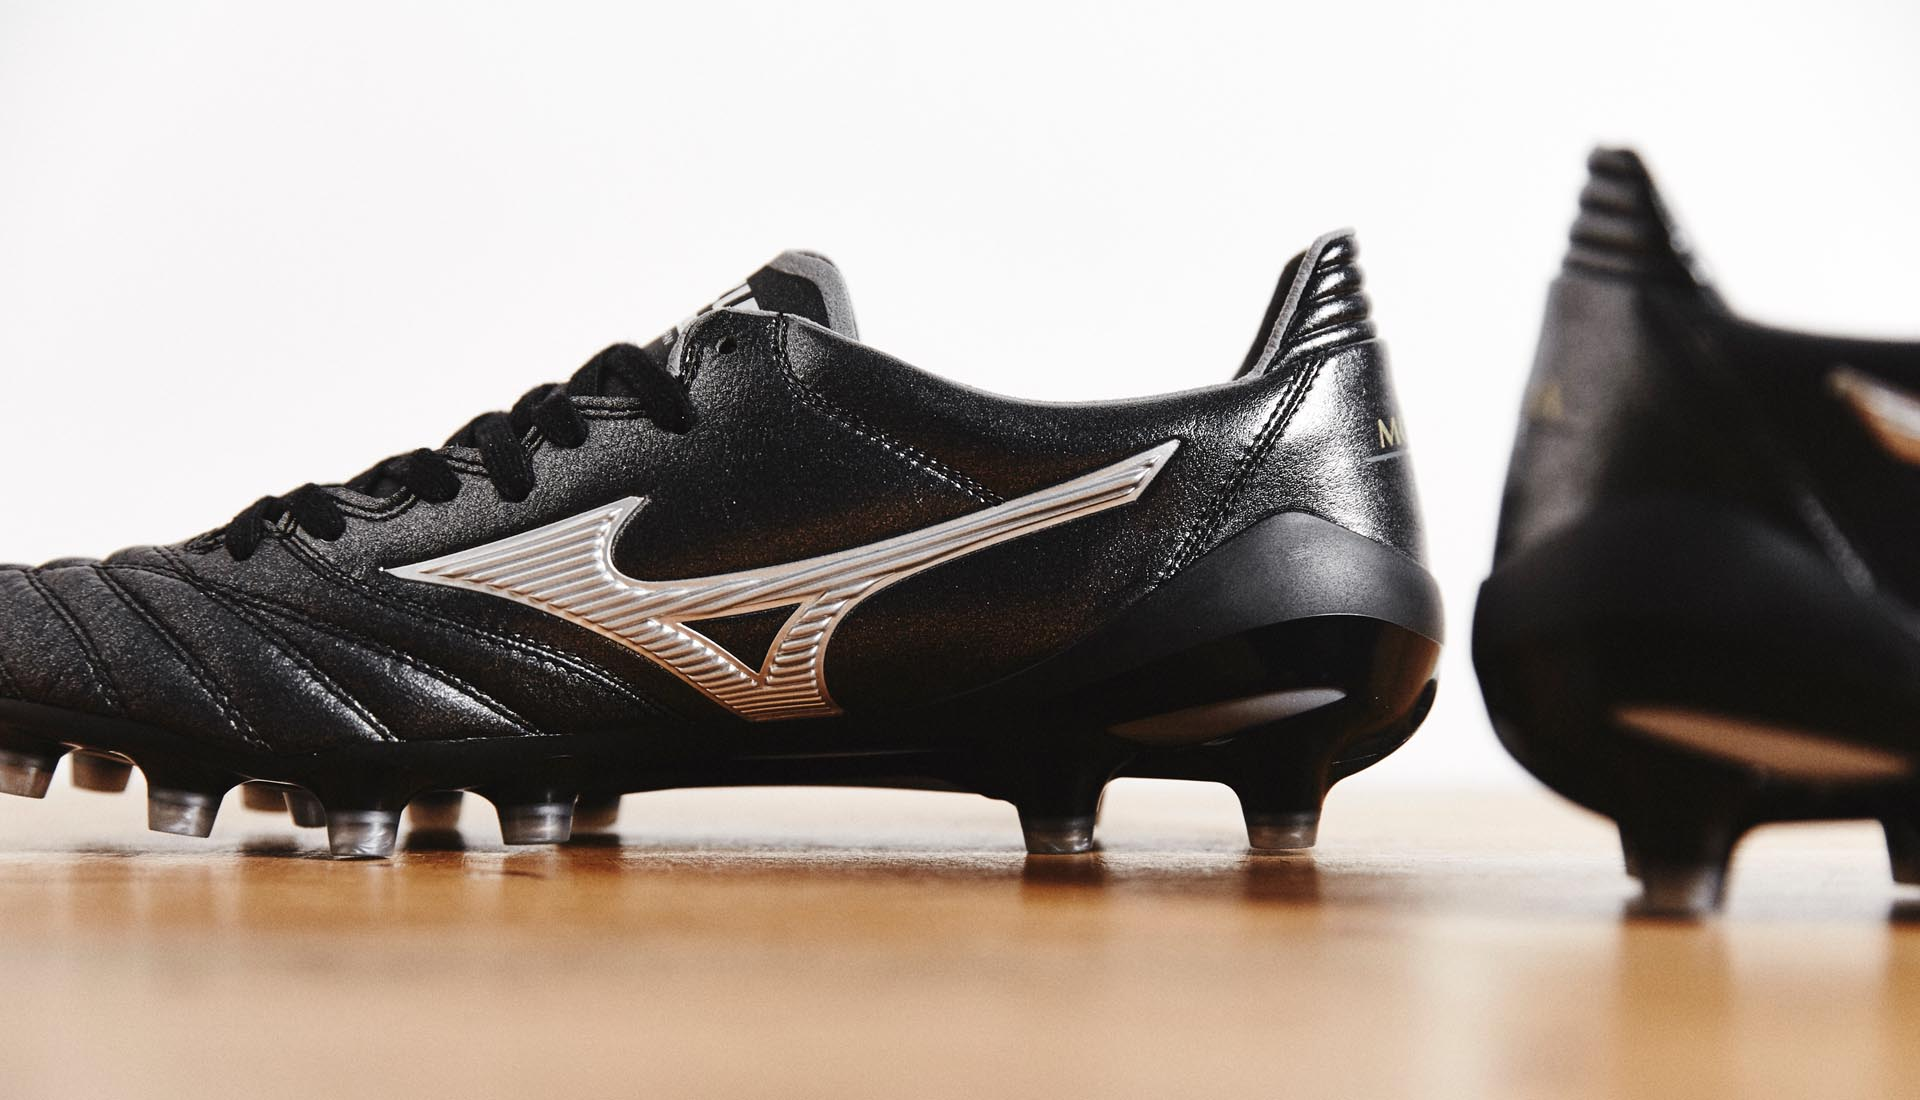 info for ac045 75866 Mizuno Morelia Neo II Made in Japan Football Boots - SoccerBible